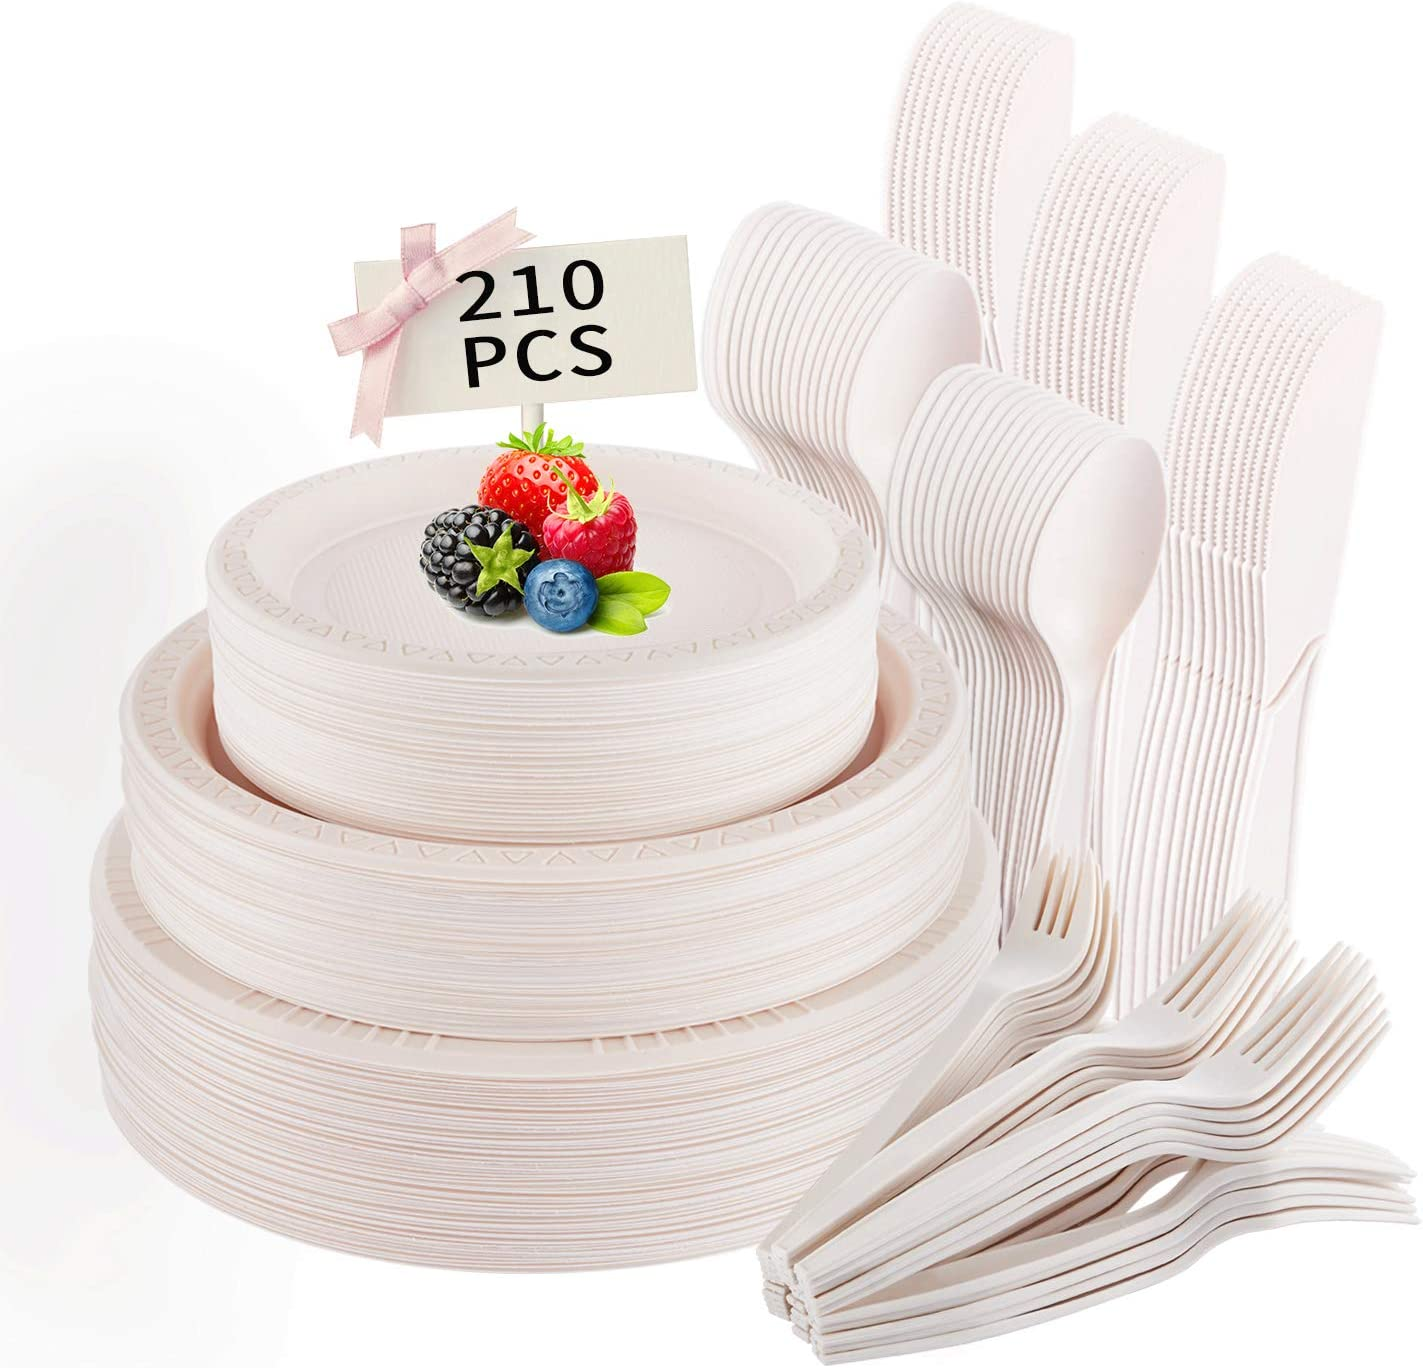 210PCS Disposable Plates, Compostable Cornstarch Cutlery Eco Friendly Tableware Biodegradable 100% Paper Plates, Forks, Knives and Spoons for Party, Camping, Picnic, BBQ